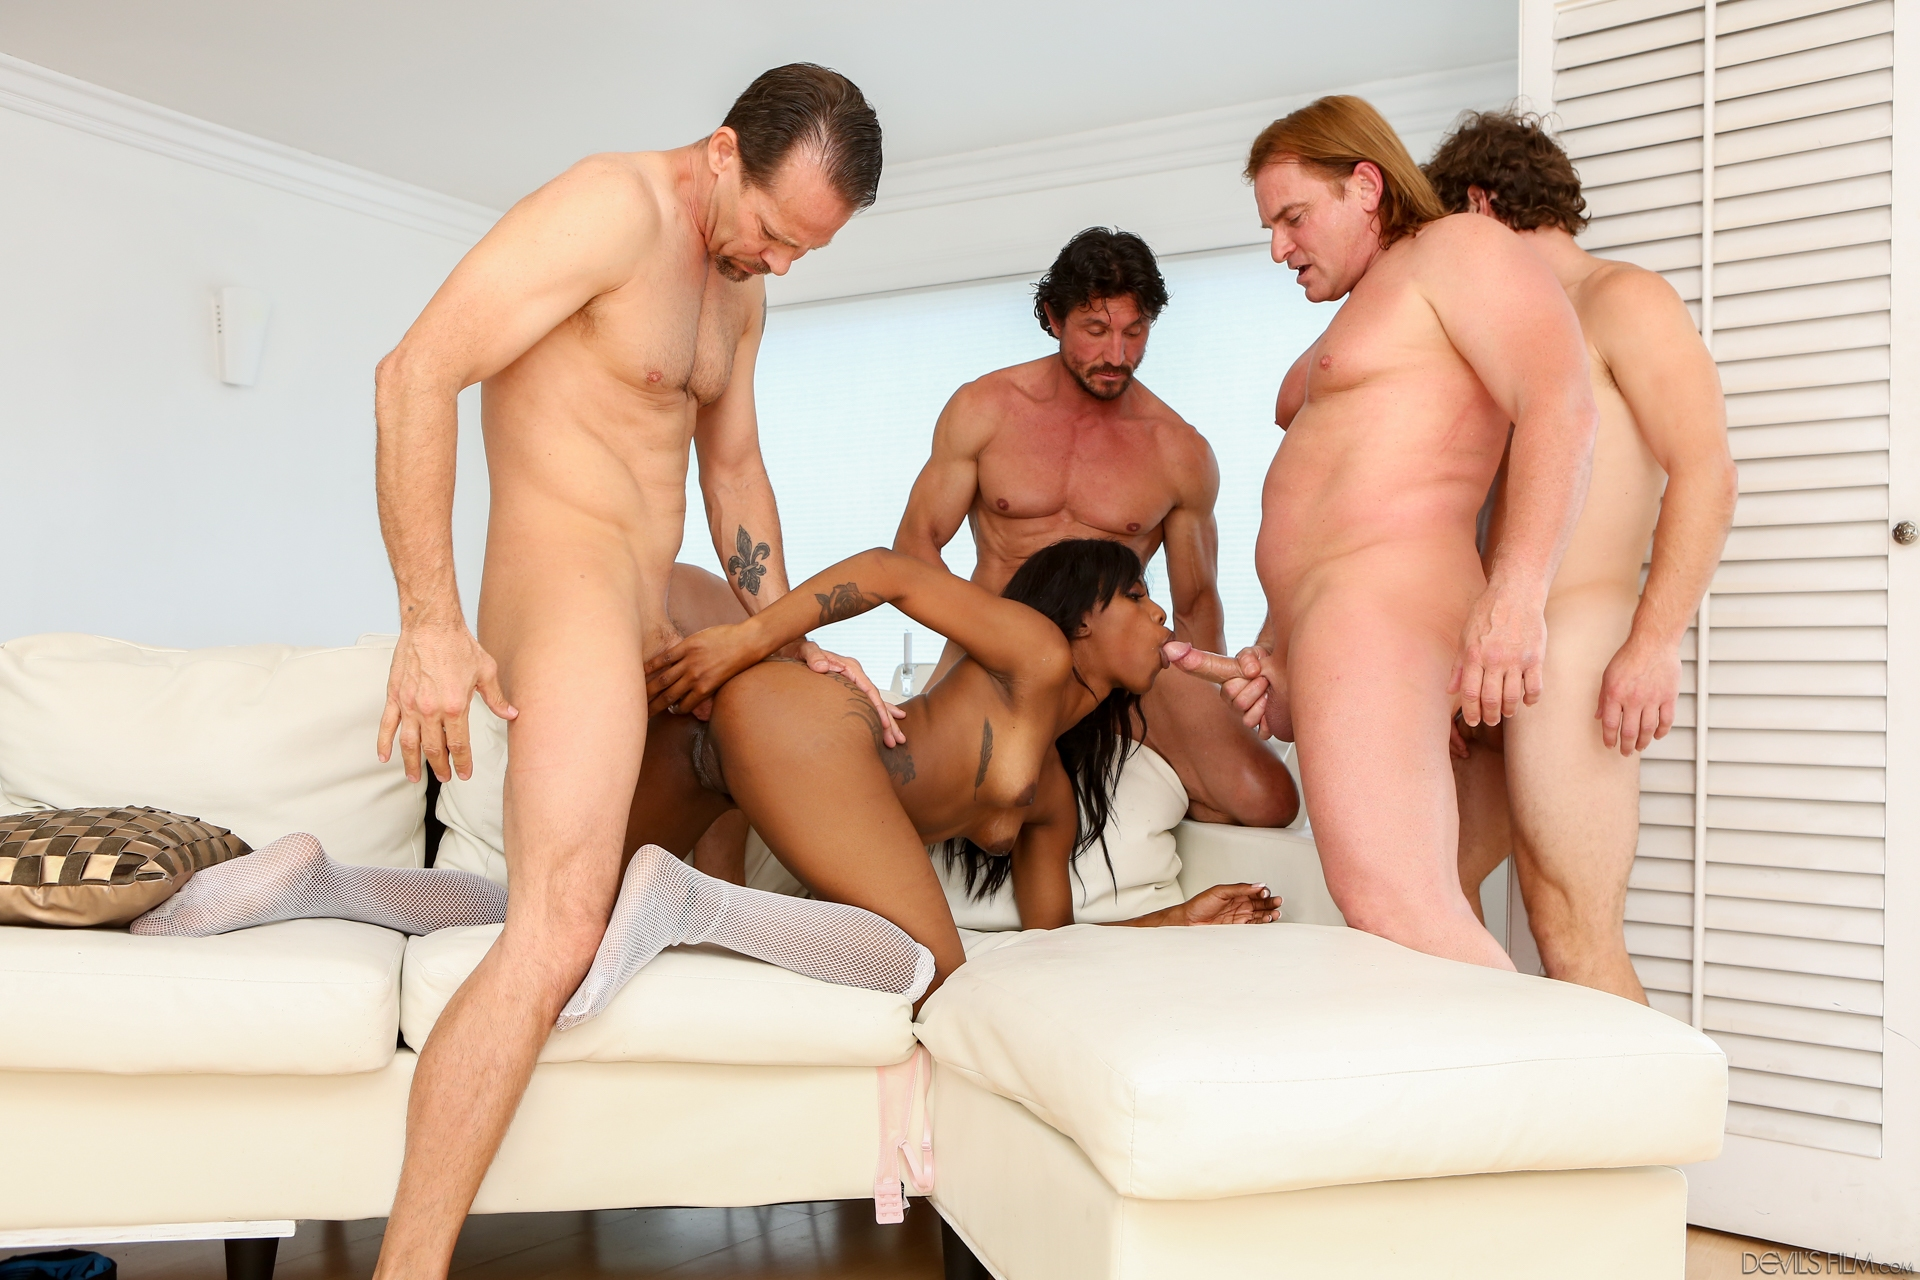 Black Girl White Guy  Most Sexy Porn  Free Hd  4K Photos-6682